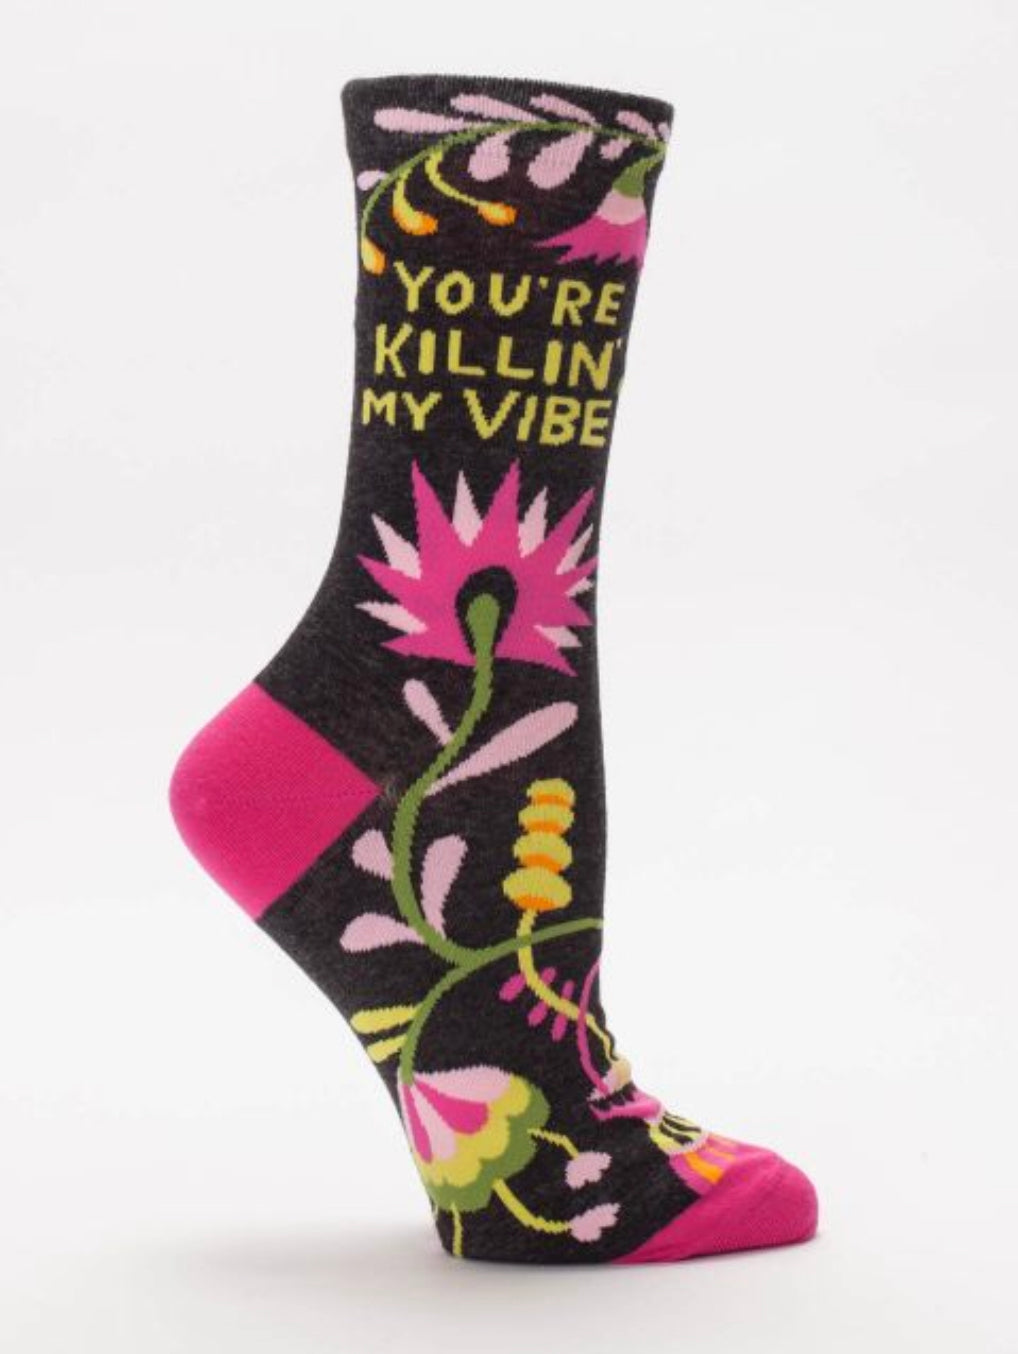 Killin' My Vibe Crew Socks